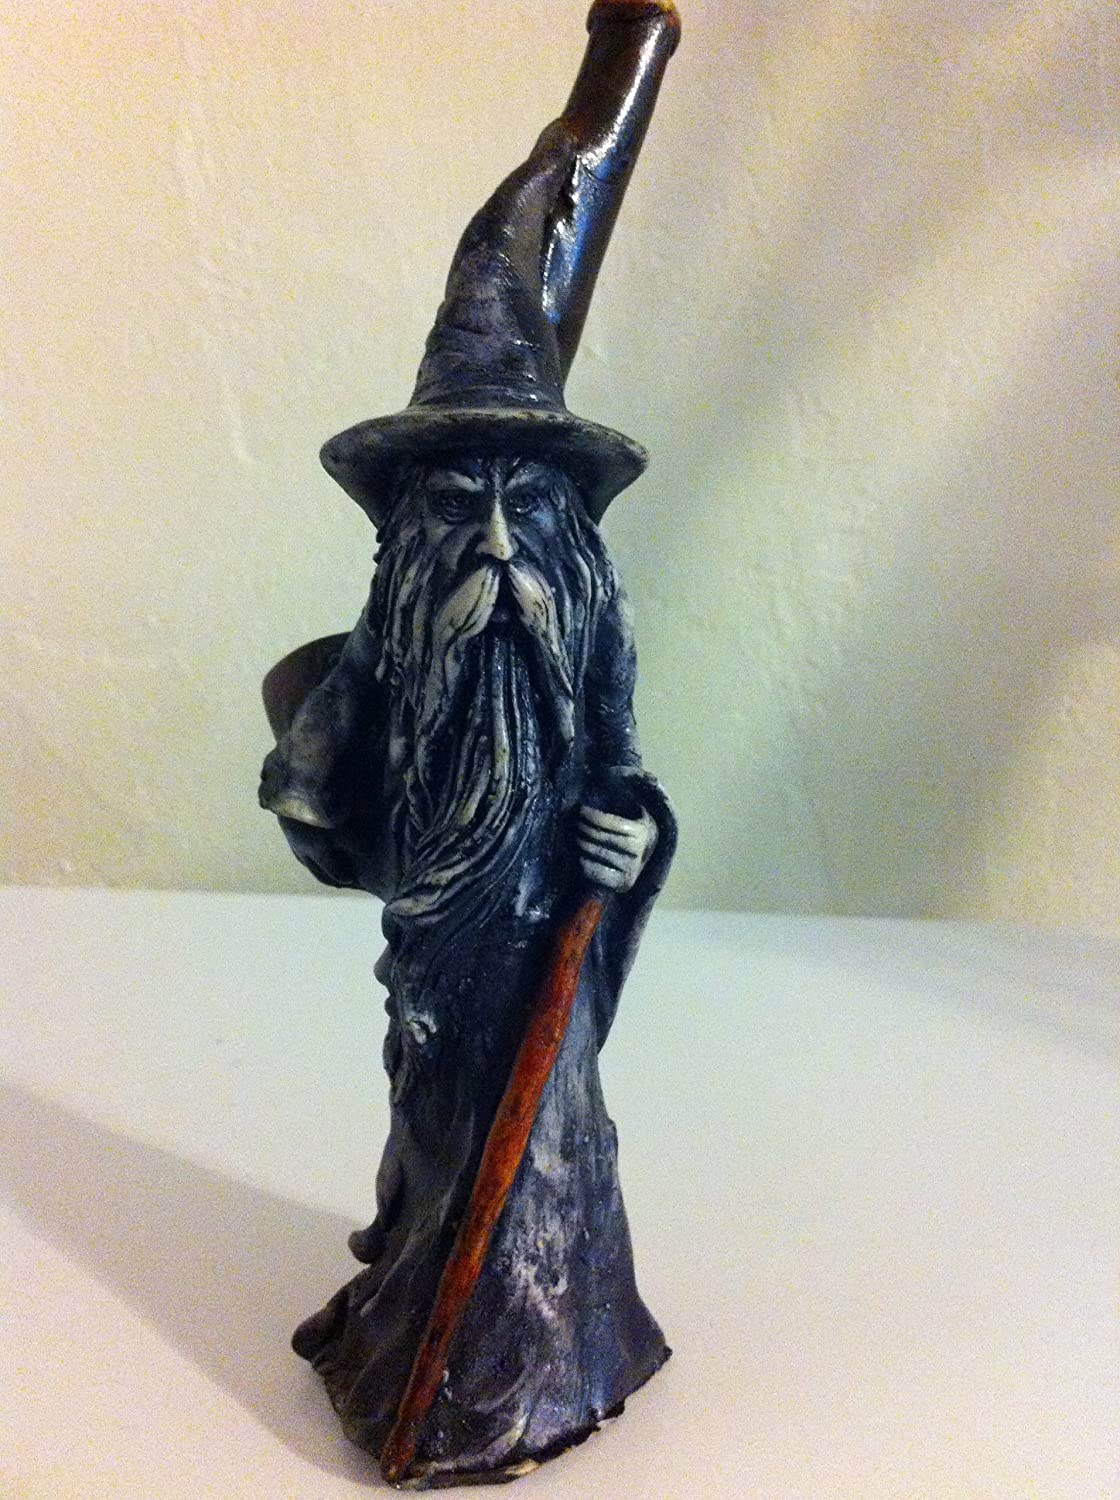 Handmade Tobacco Pipe, New Gandolf Design